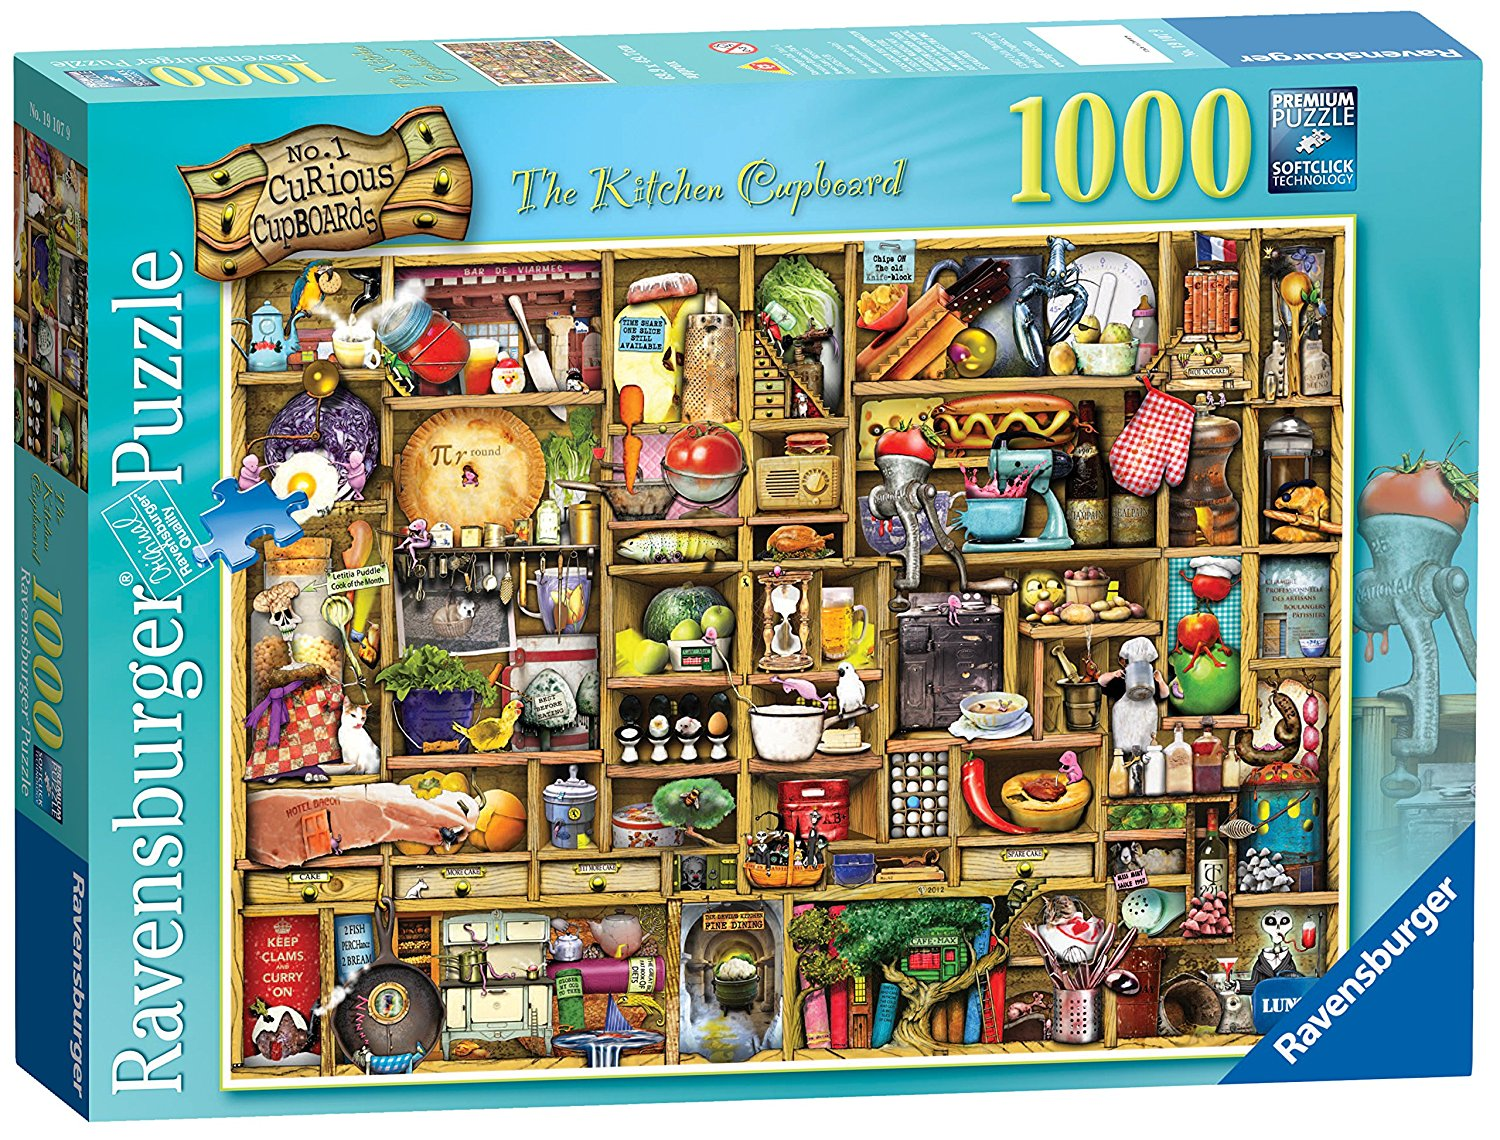 Curious Cupboard Kitchen 1000 Piece Puzzle By Ravensburger by